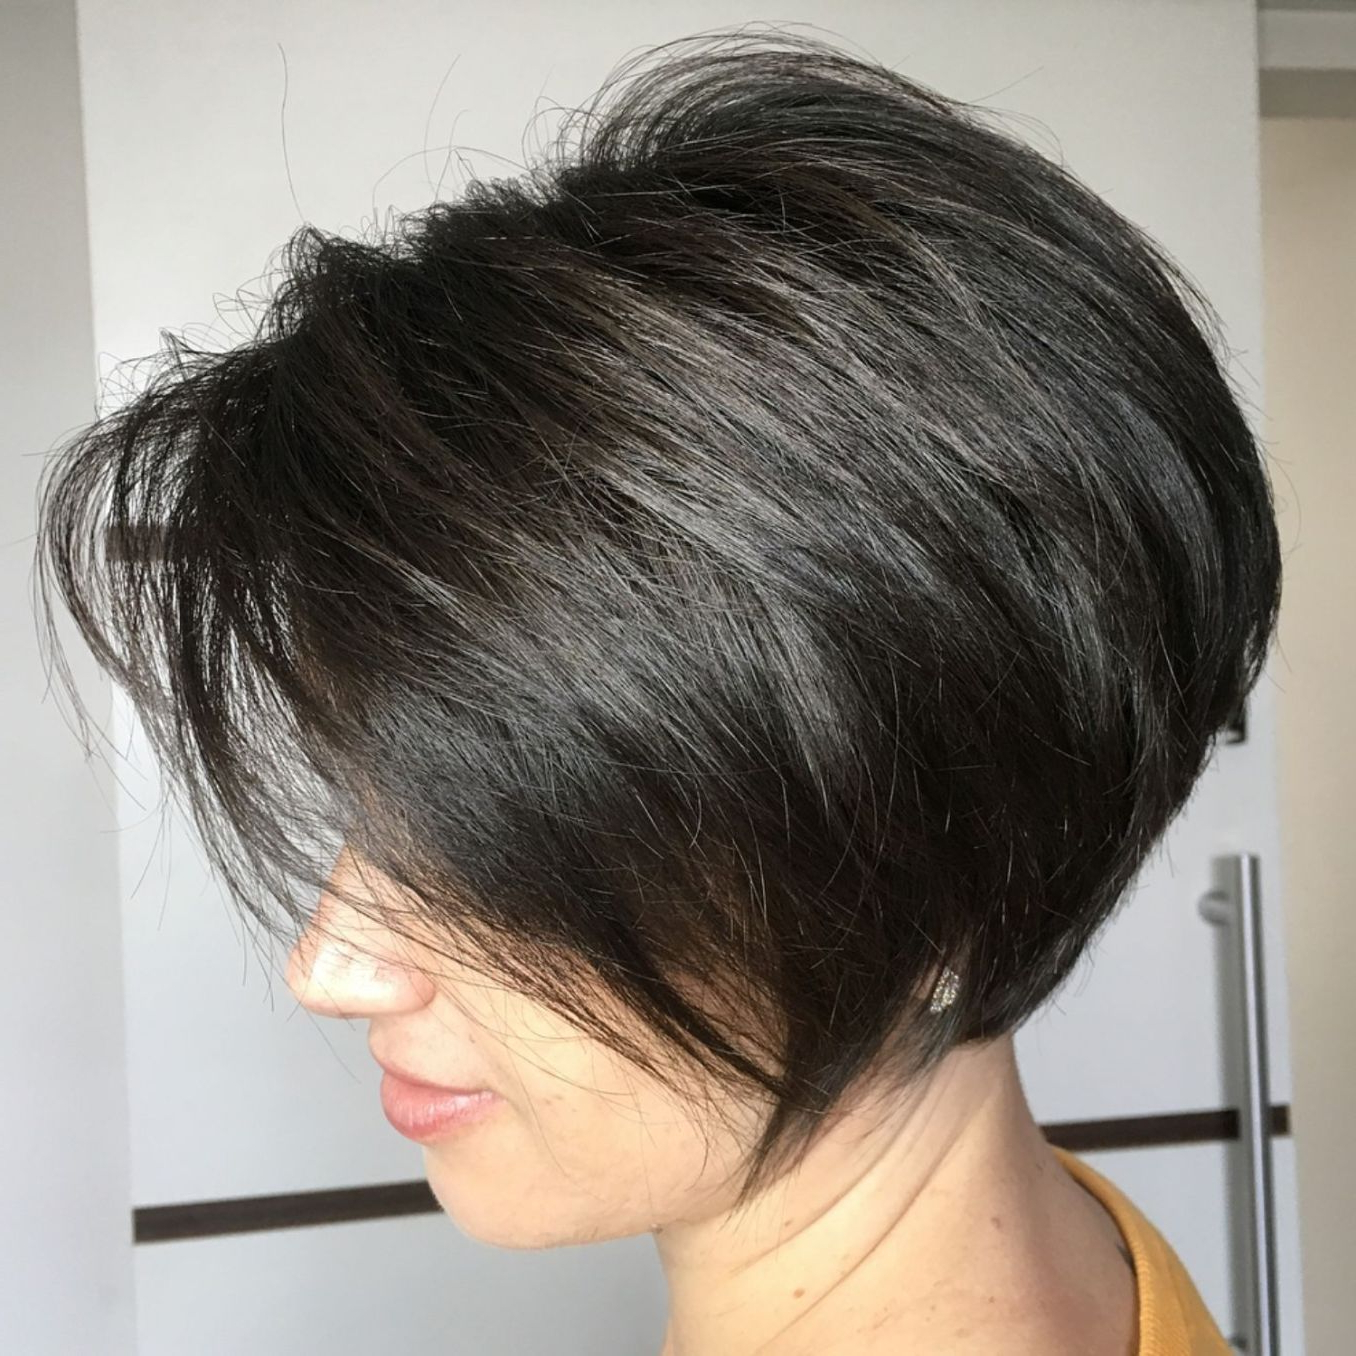 60 Classy Short Haircuts And Hairstyles For Thick Hair In 2018 With Jaw Length Inverted Curly Brunette Bob Hairstyles (View 15 of 20)